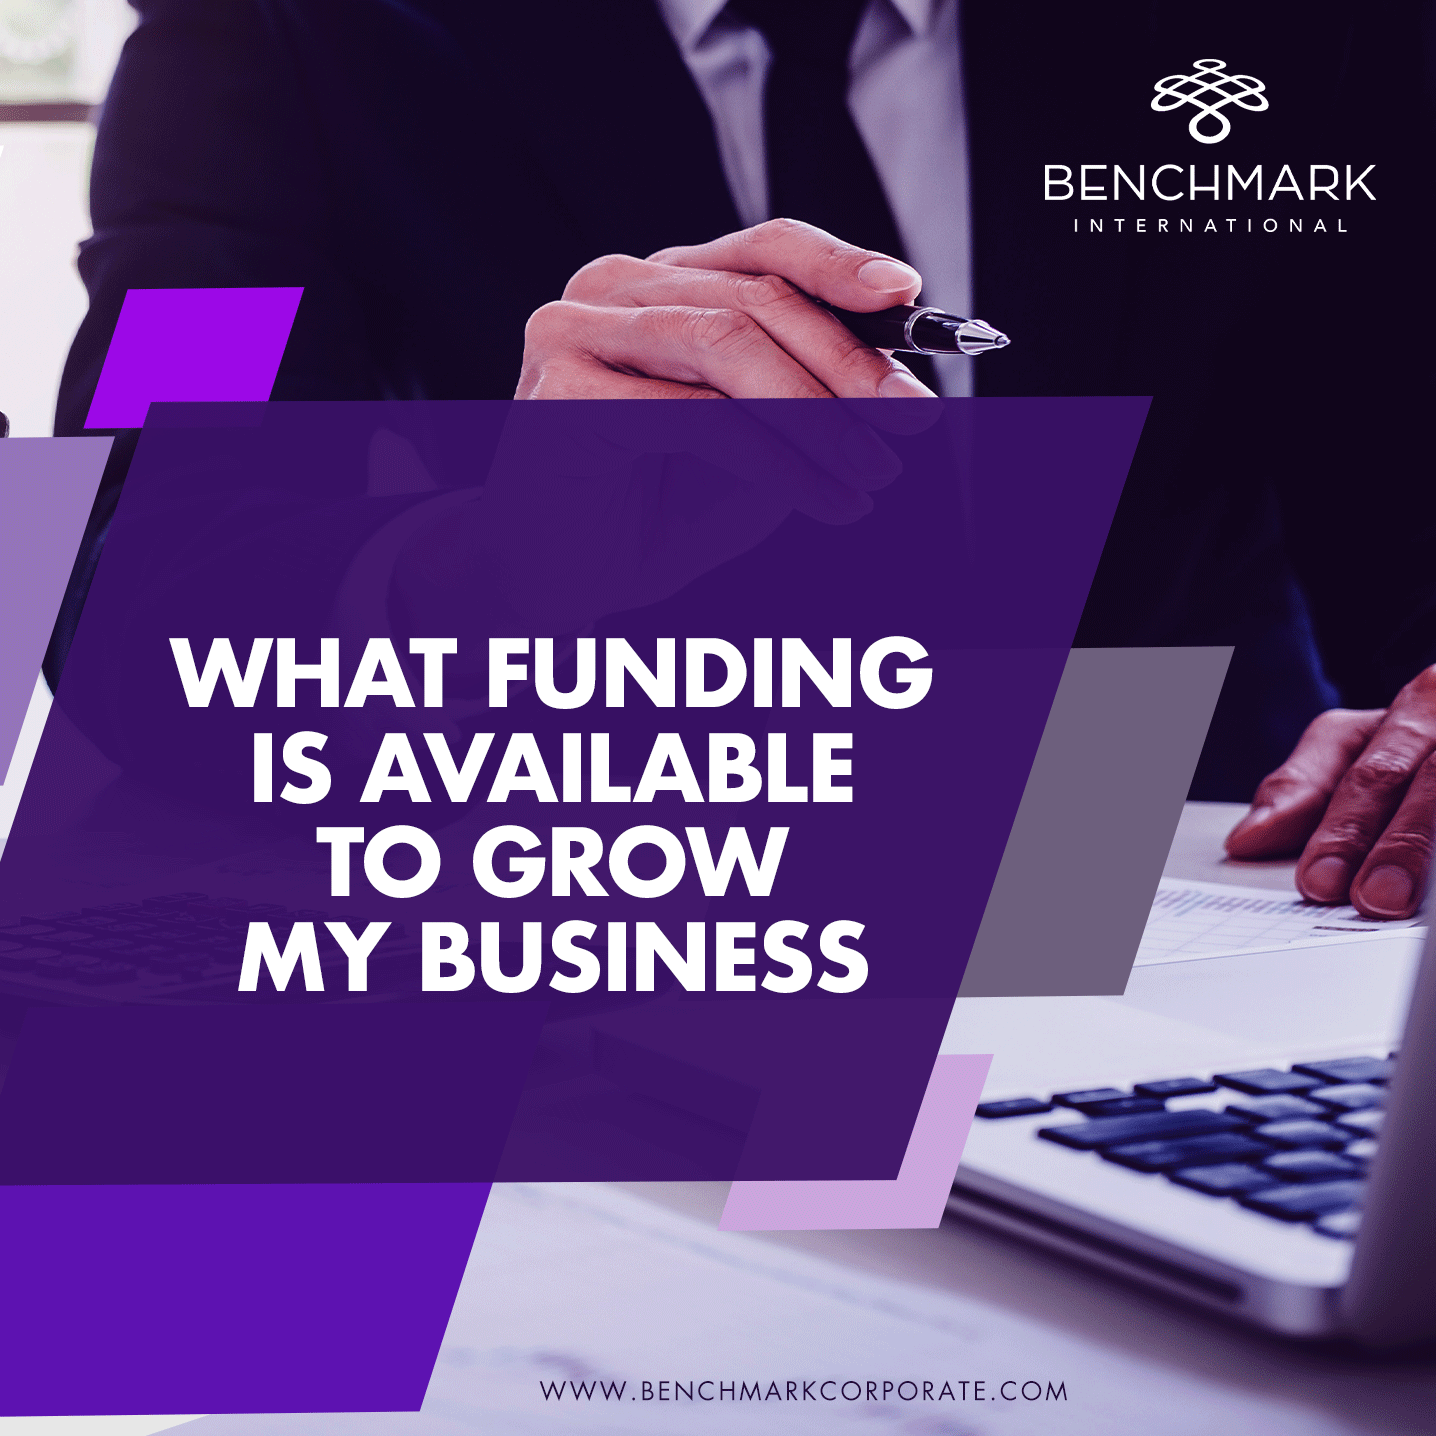 Funding-for-Business-Benchmark-Social